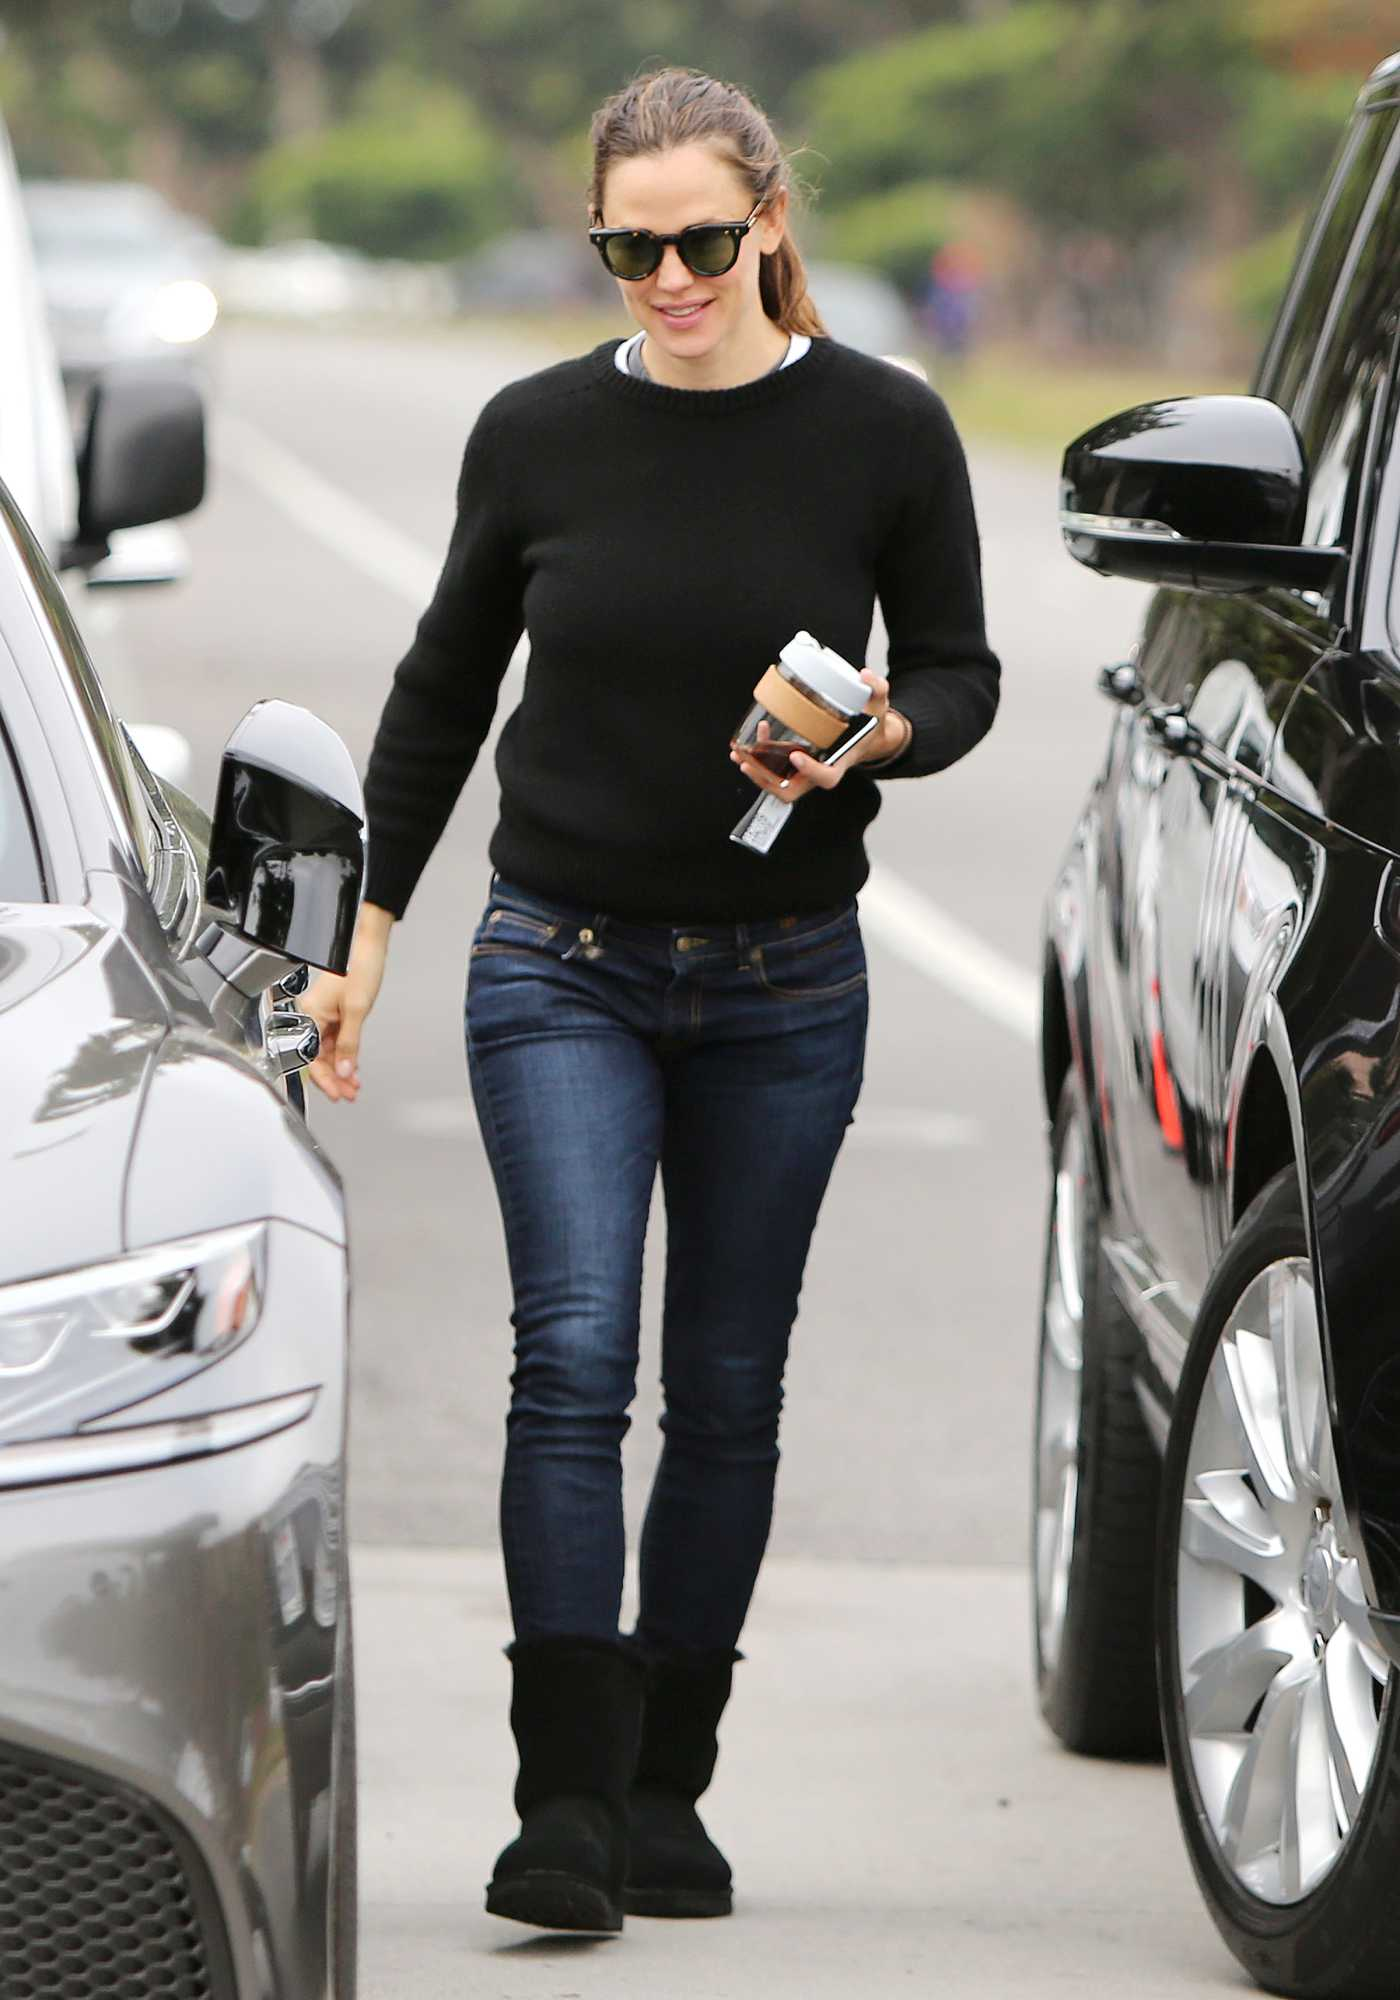 Jennifer Garner in a Black Sweater Grabs an Early Morning Coffee in Santa Monica 04/15/2019